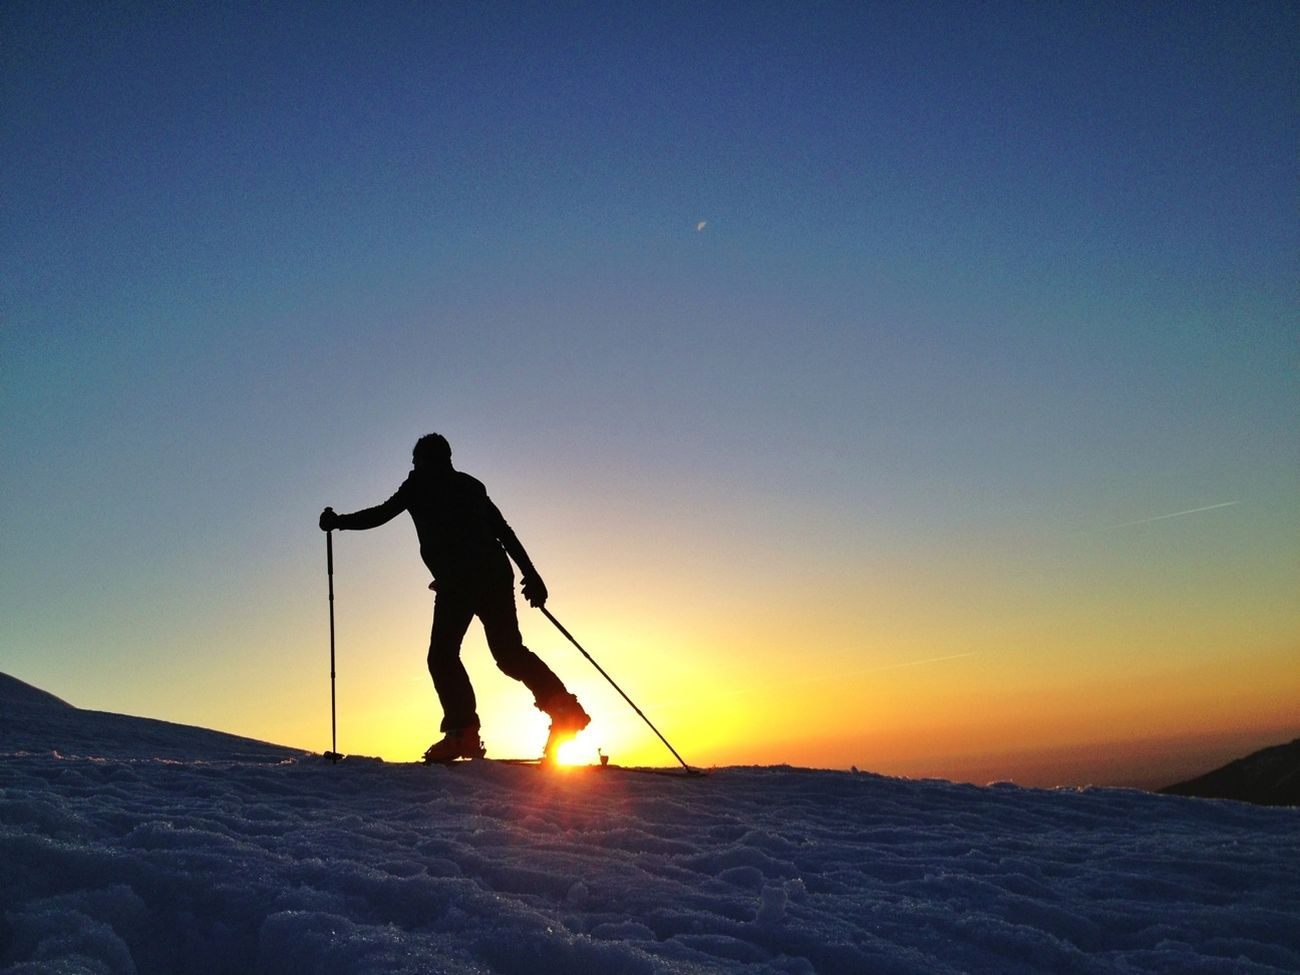 Mi Domingo #esquídemontaña #skimountaineering #skimo #mountain #sunrise #amanecer #cotos #peñalara #gasss #training #ilovemountain #beforework #dynafit #happy #feliz #welovemountain #sinfiltros